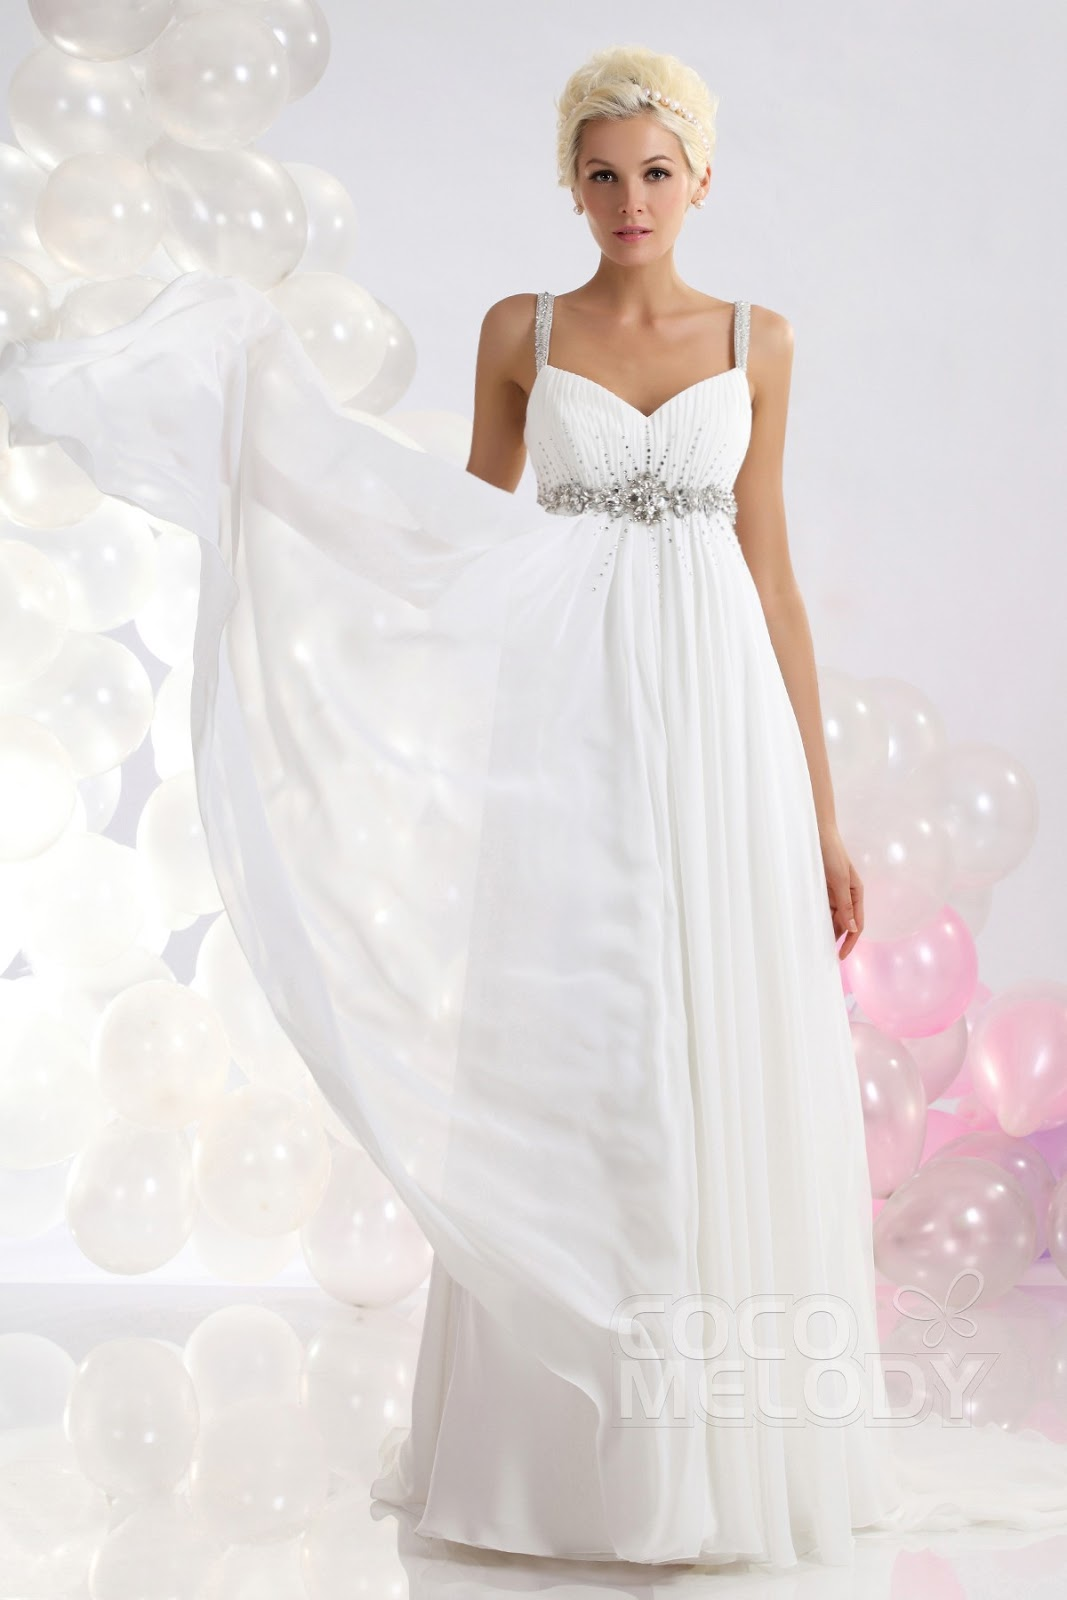 Fashion week Wedding Beautiful dresses with straps for woman